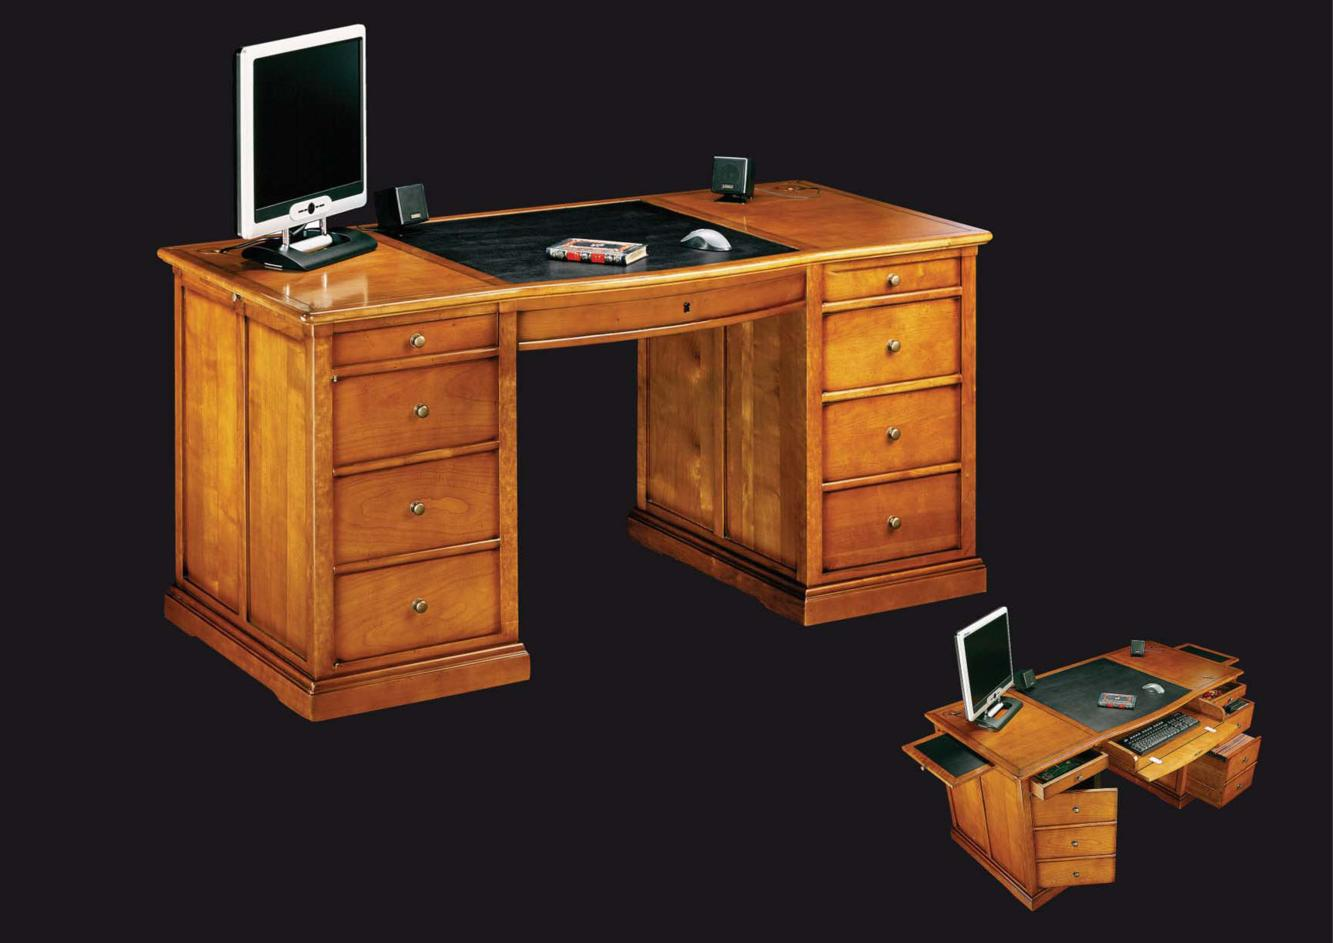 acheter votre bureau informatique chez simeuble. Black Bedroom Furniture Sets. Home Design Ideas